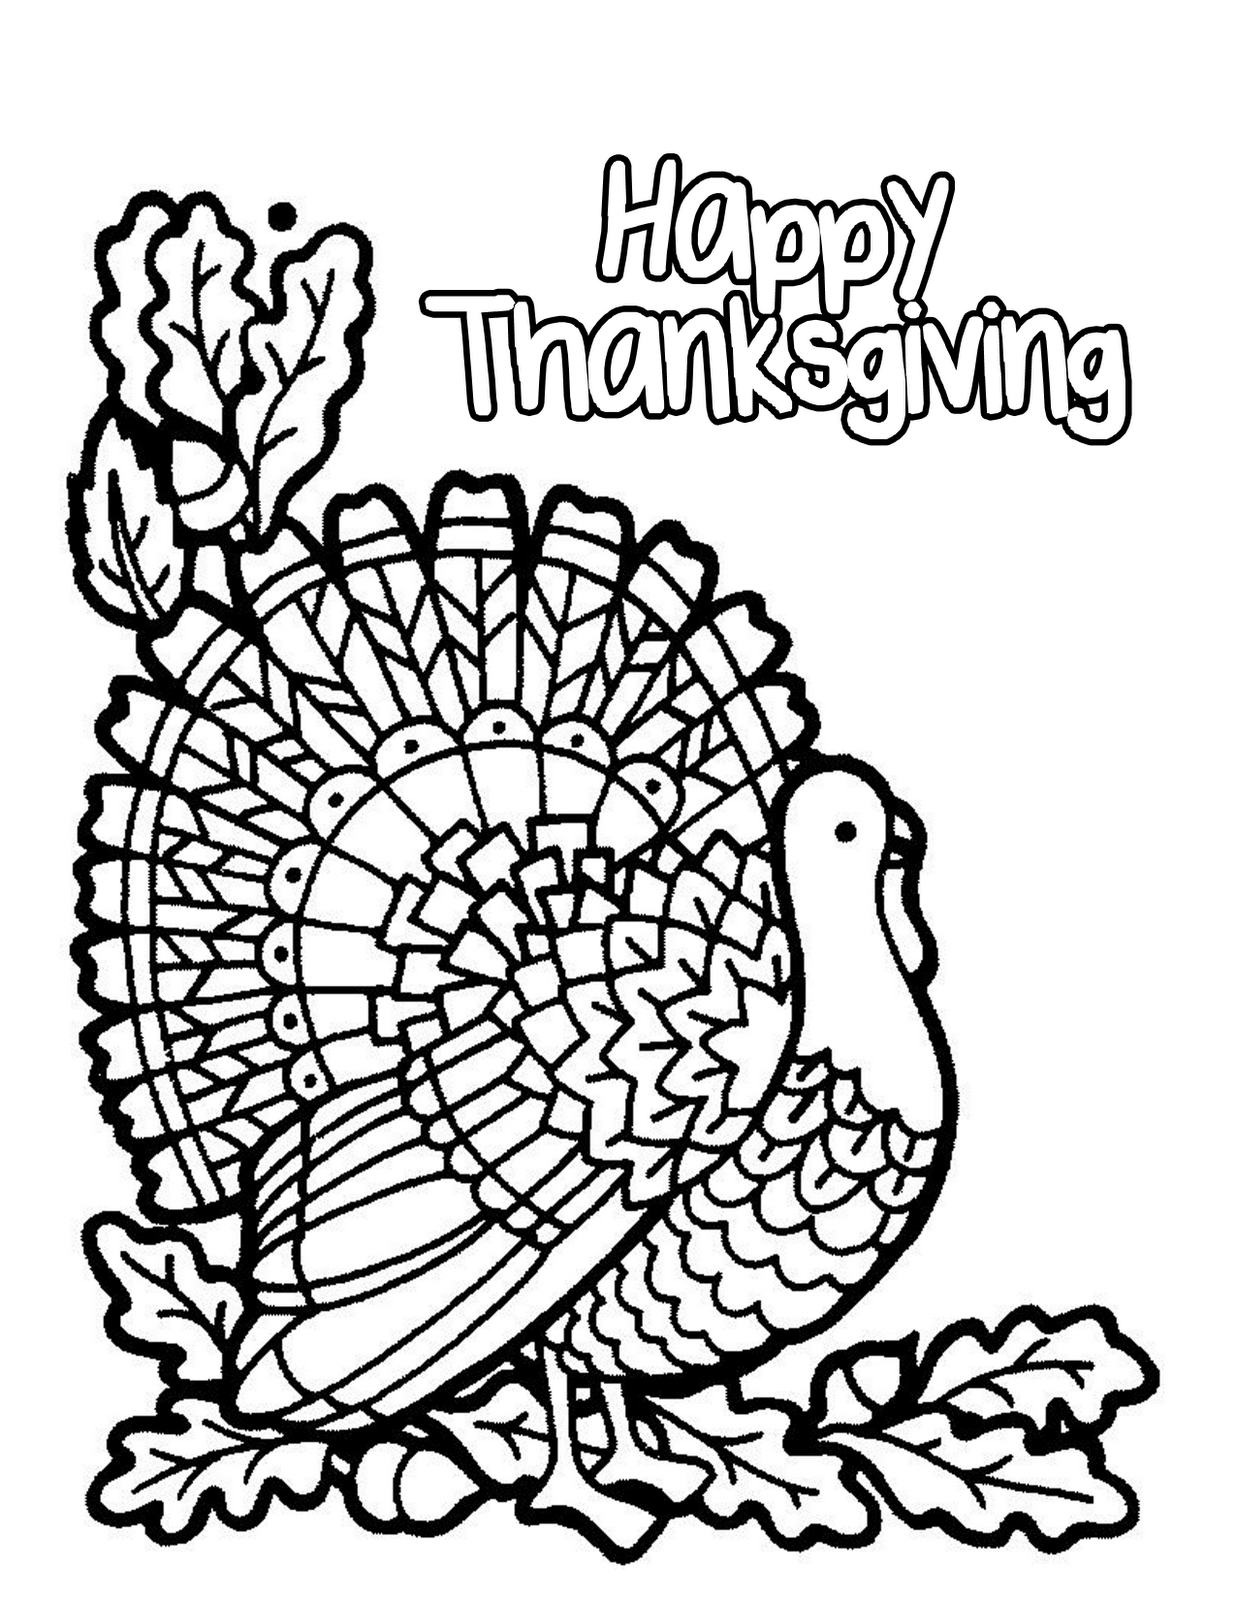 Coloring Pages For Thanksgiving Free : Thanksgiving coloring pages for adults home